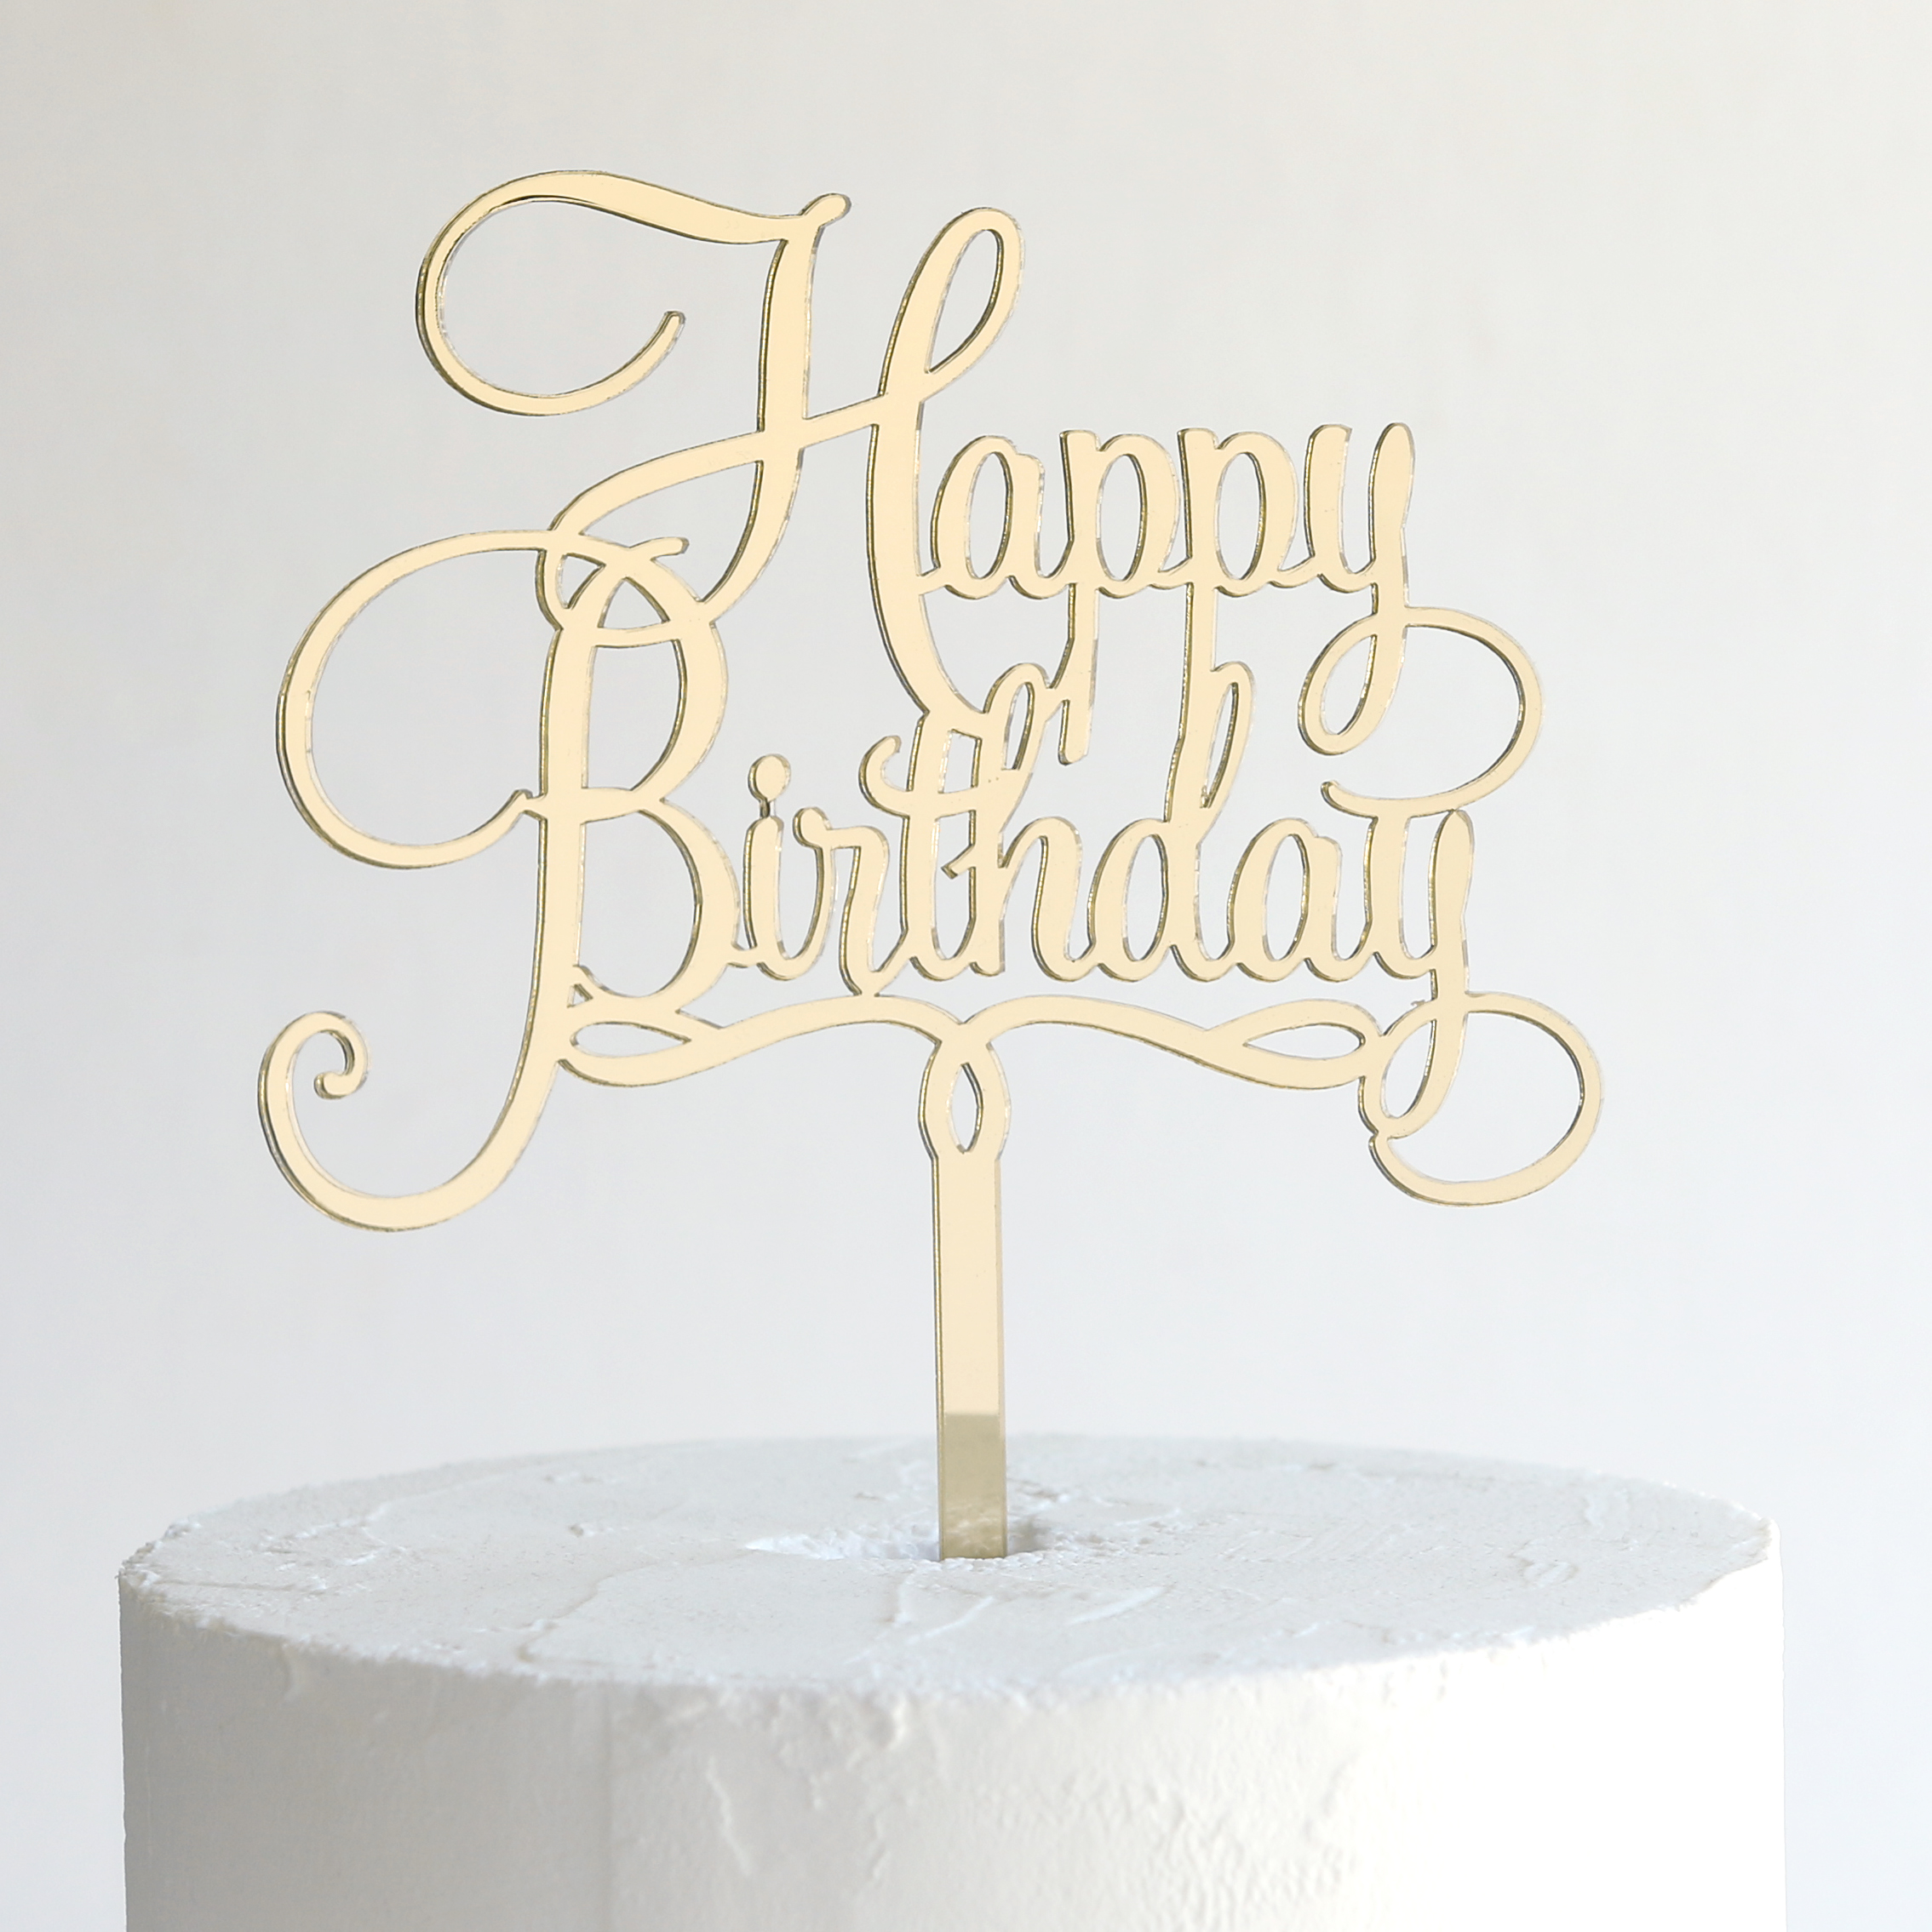 Tremendous Happy Birthday Cake Topper Sandra Dillon Design Funny Birthday Cards Online Elaedamsfinfo